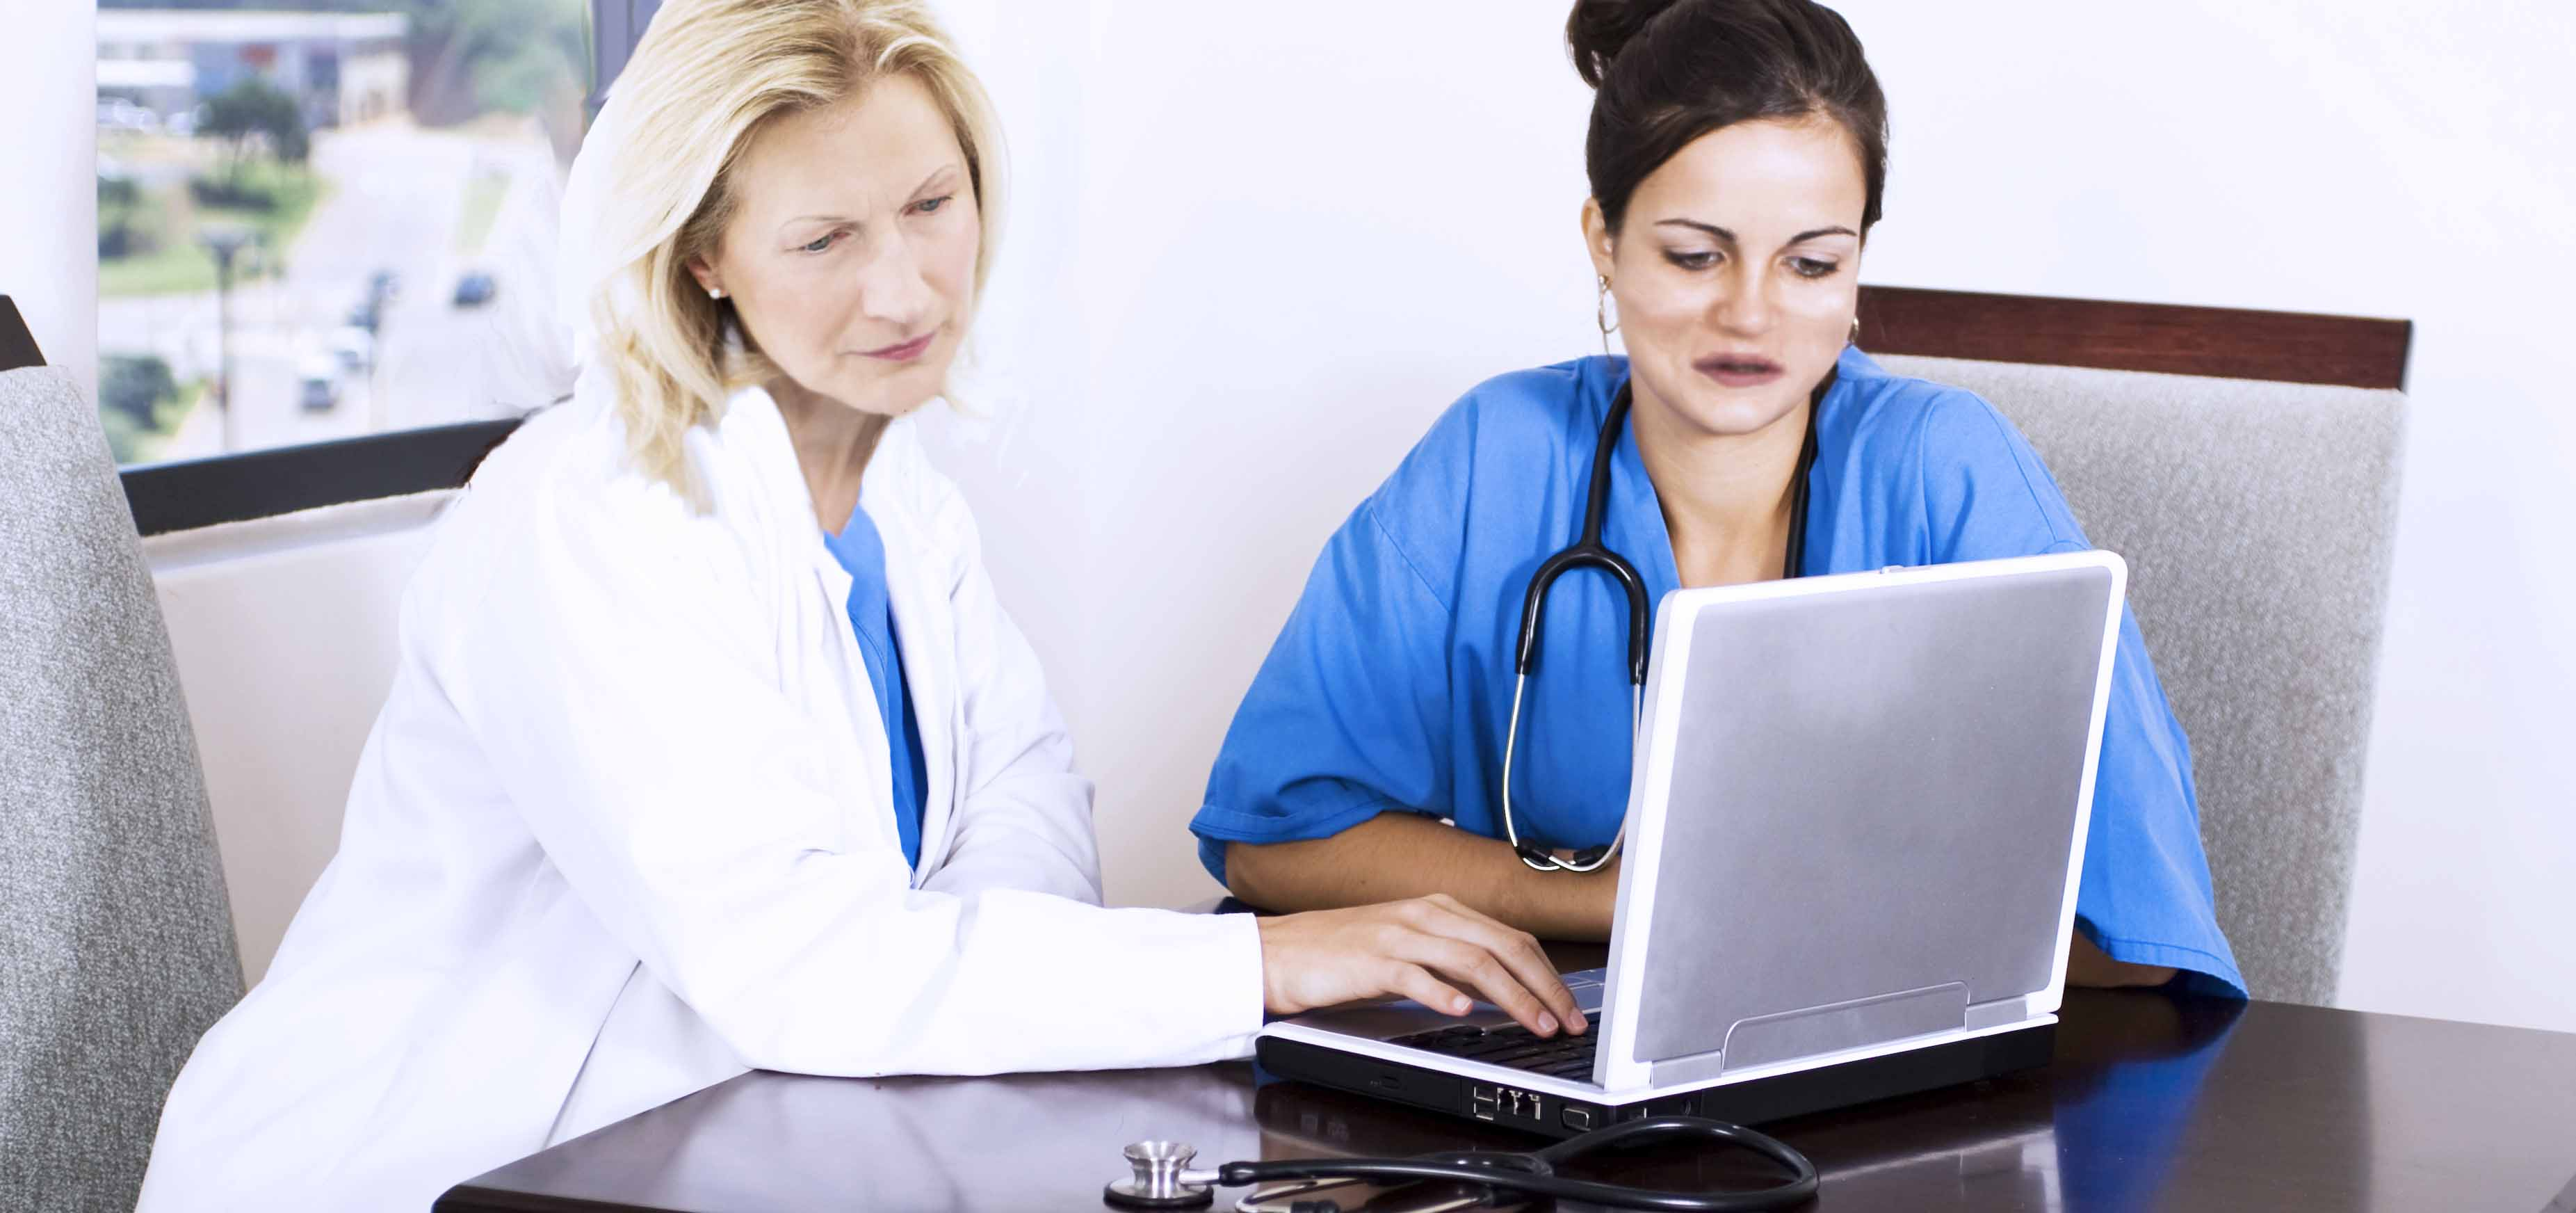 Making Electronic Health Records More Efficient